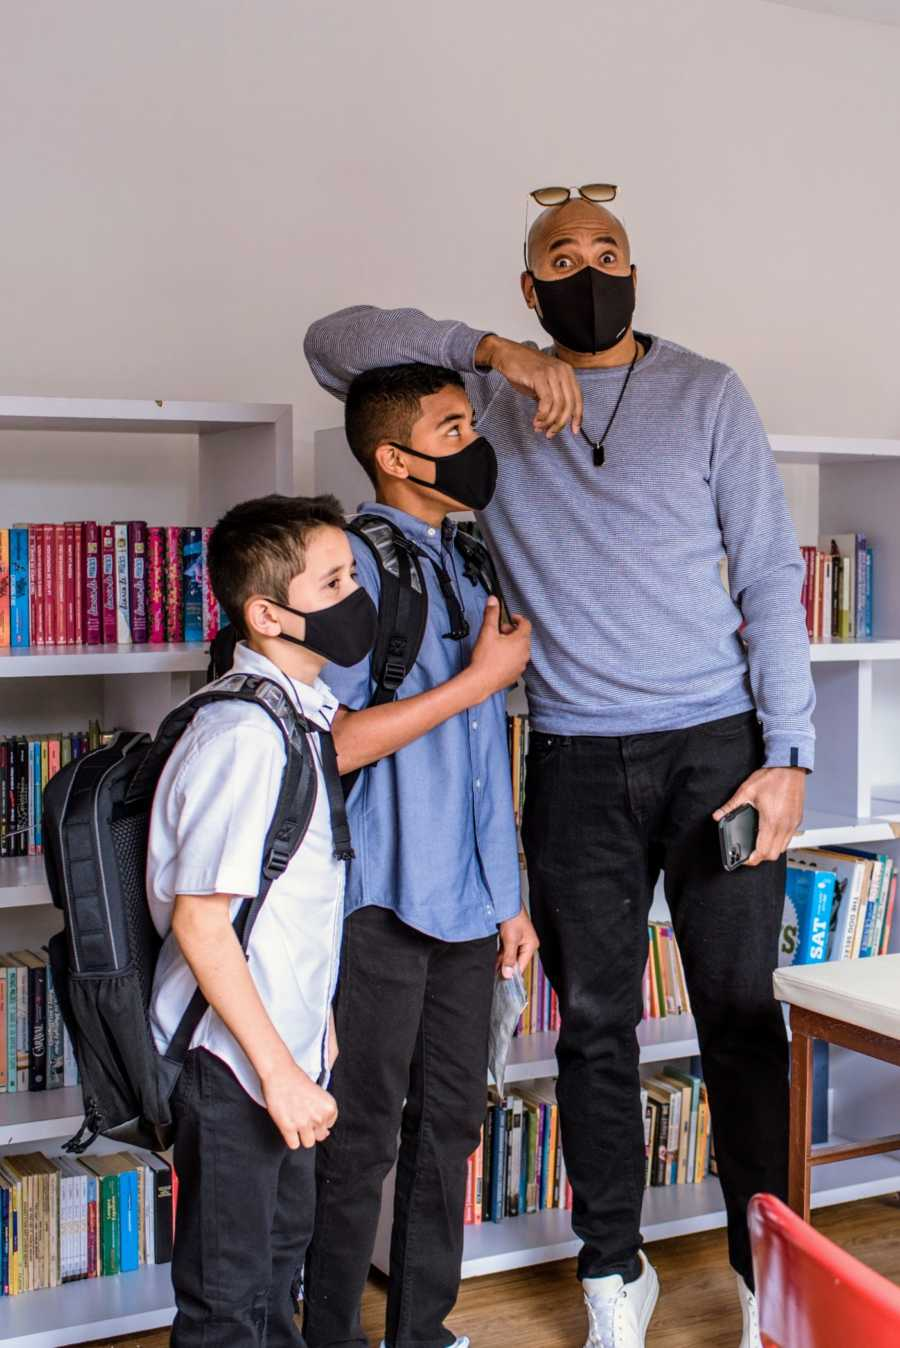 A pair of adopted brothers and their father stand by bookshelves